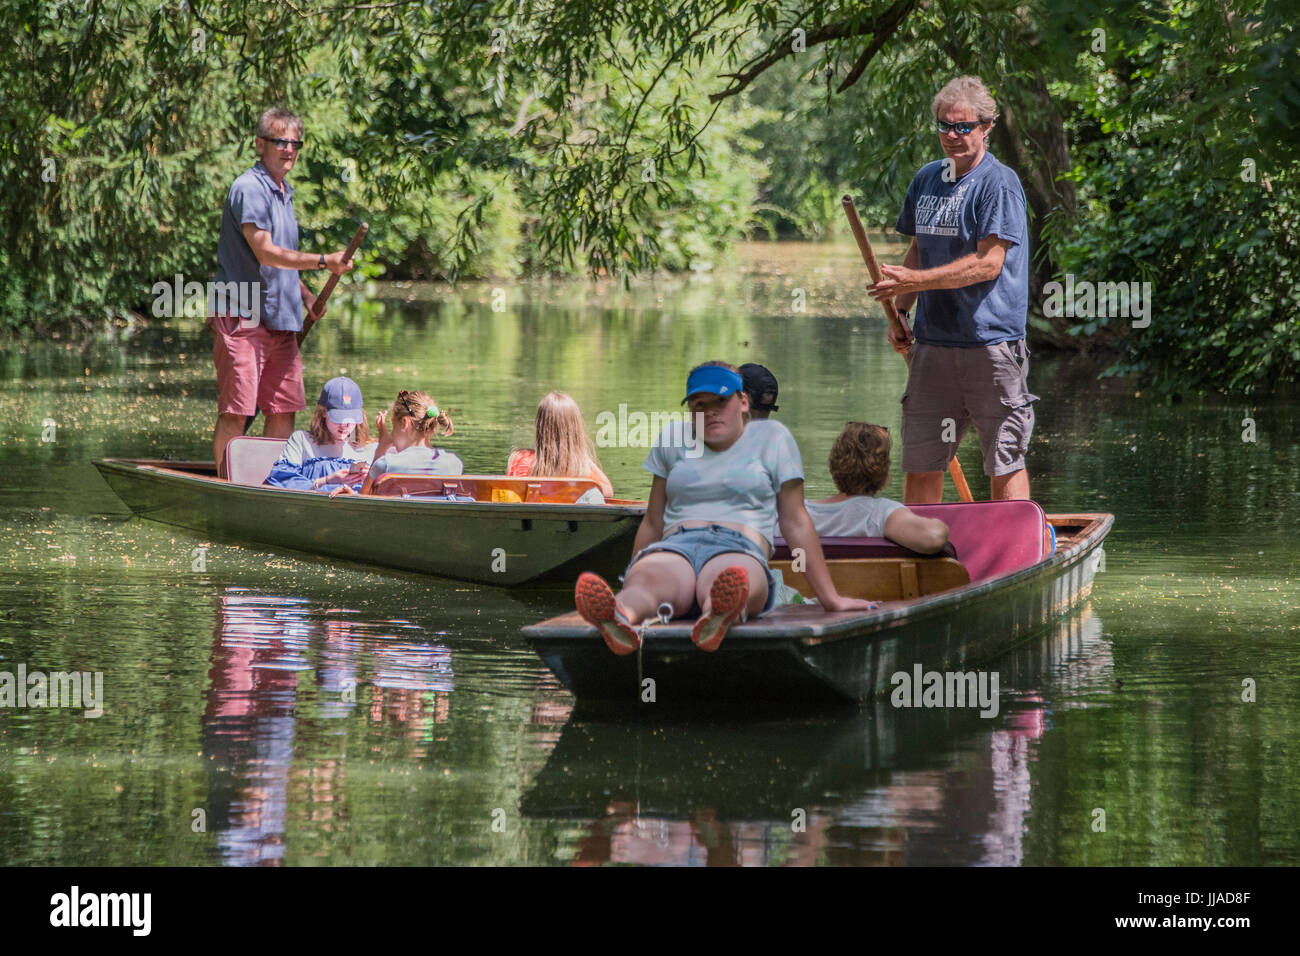 Oxford, UK. 18th Jul, 2017. Punting on the river Cherwell in Oxford 18 July 2017 Credit: Guy Bell/Alamy Live News Stock Photo